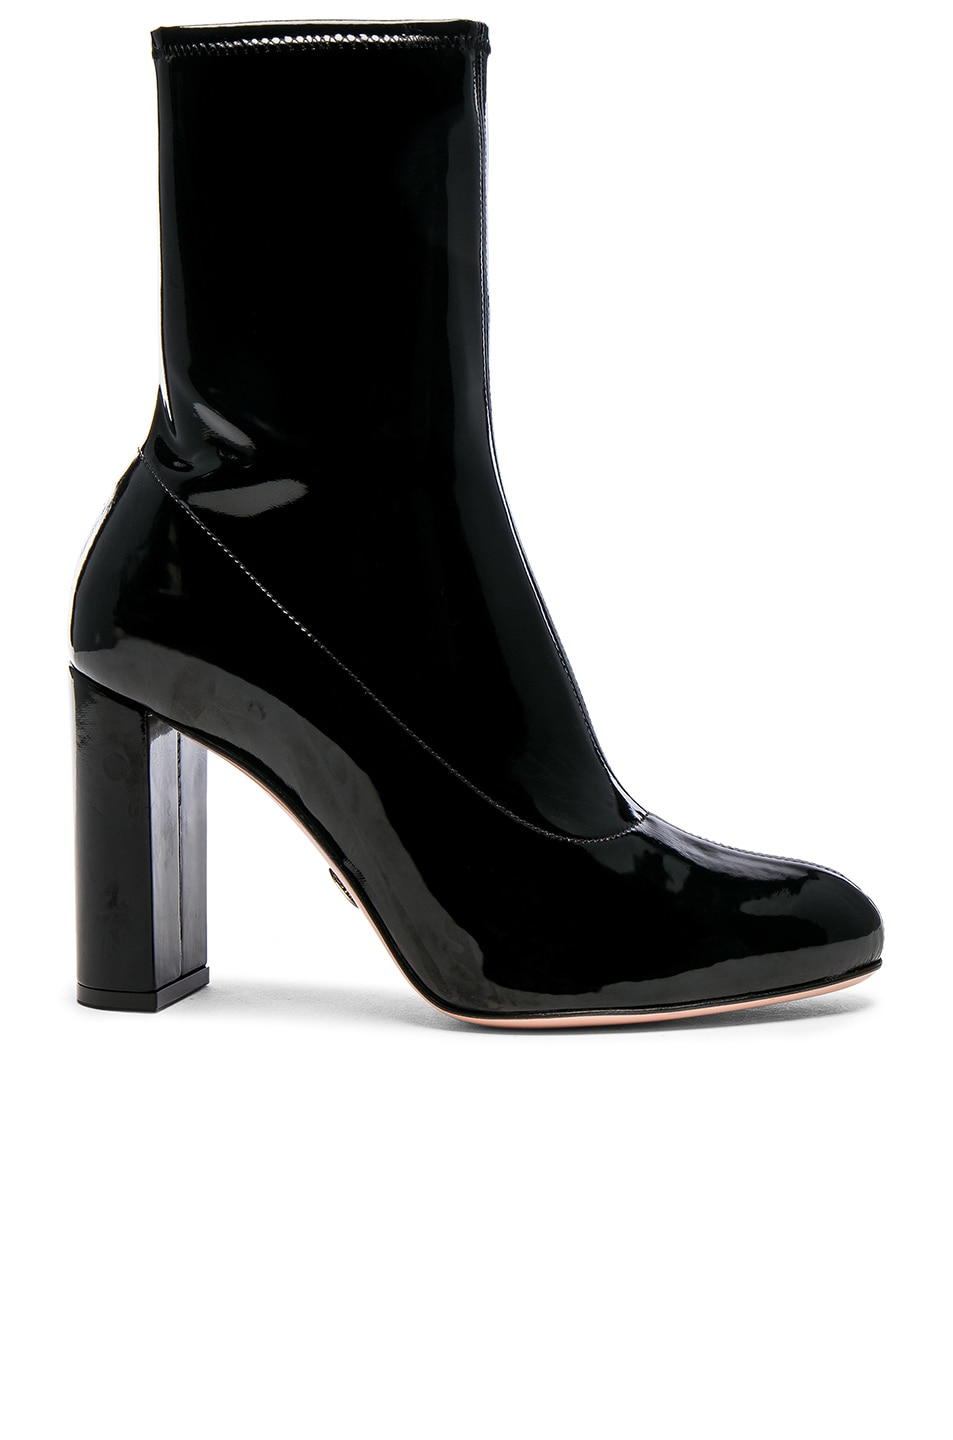 Image 1 of Oscar Tiye Patent Leather Giorgia Boots in Black Latex